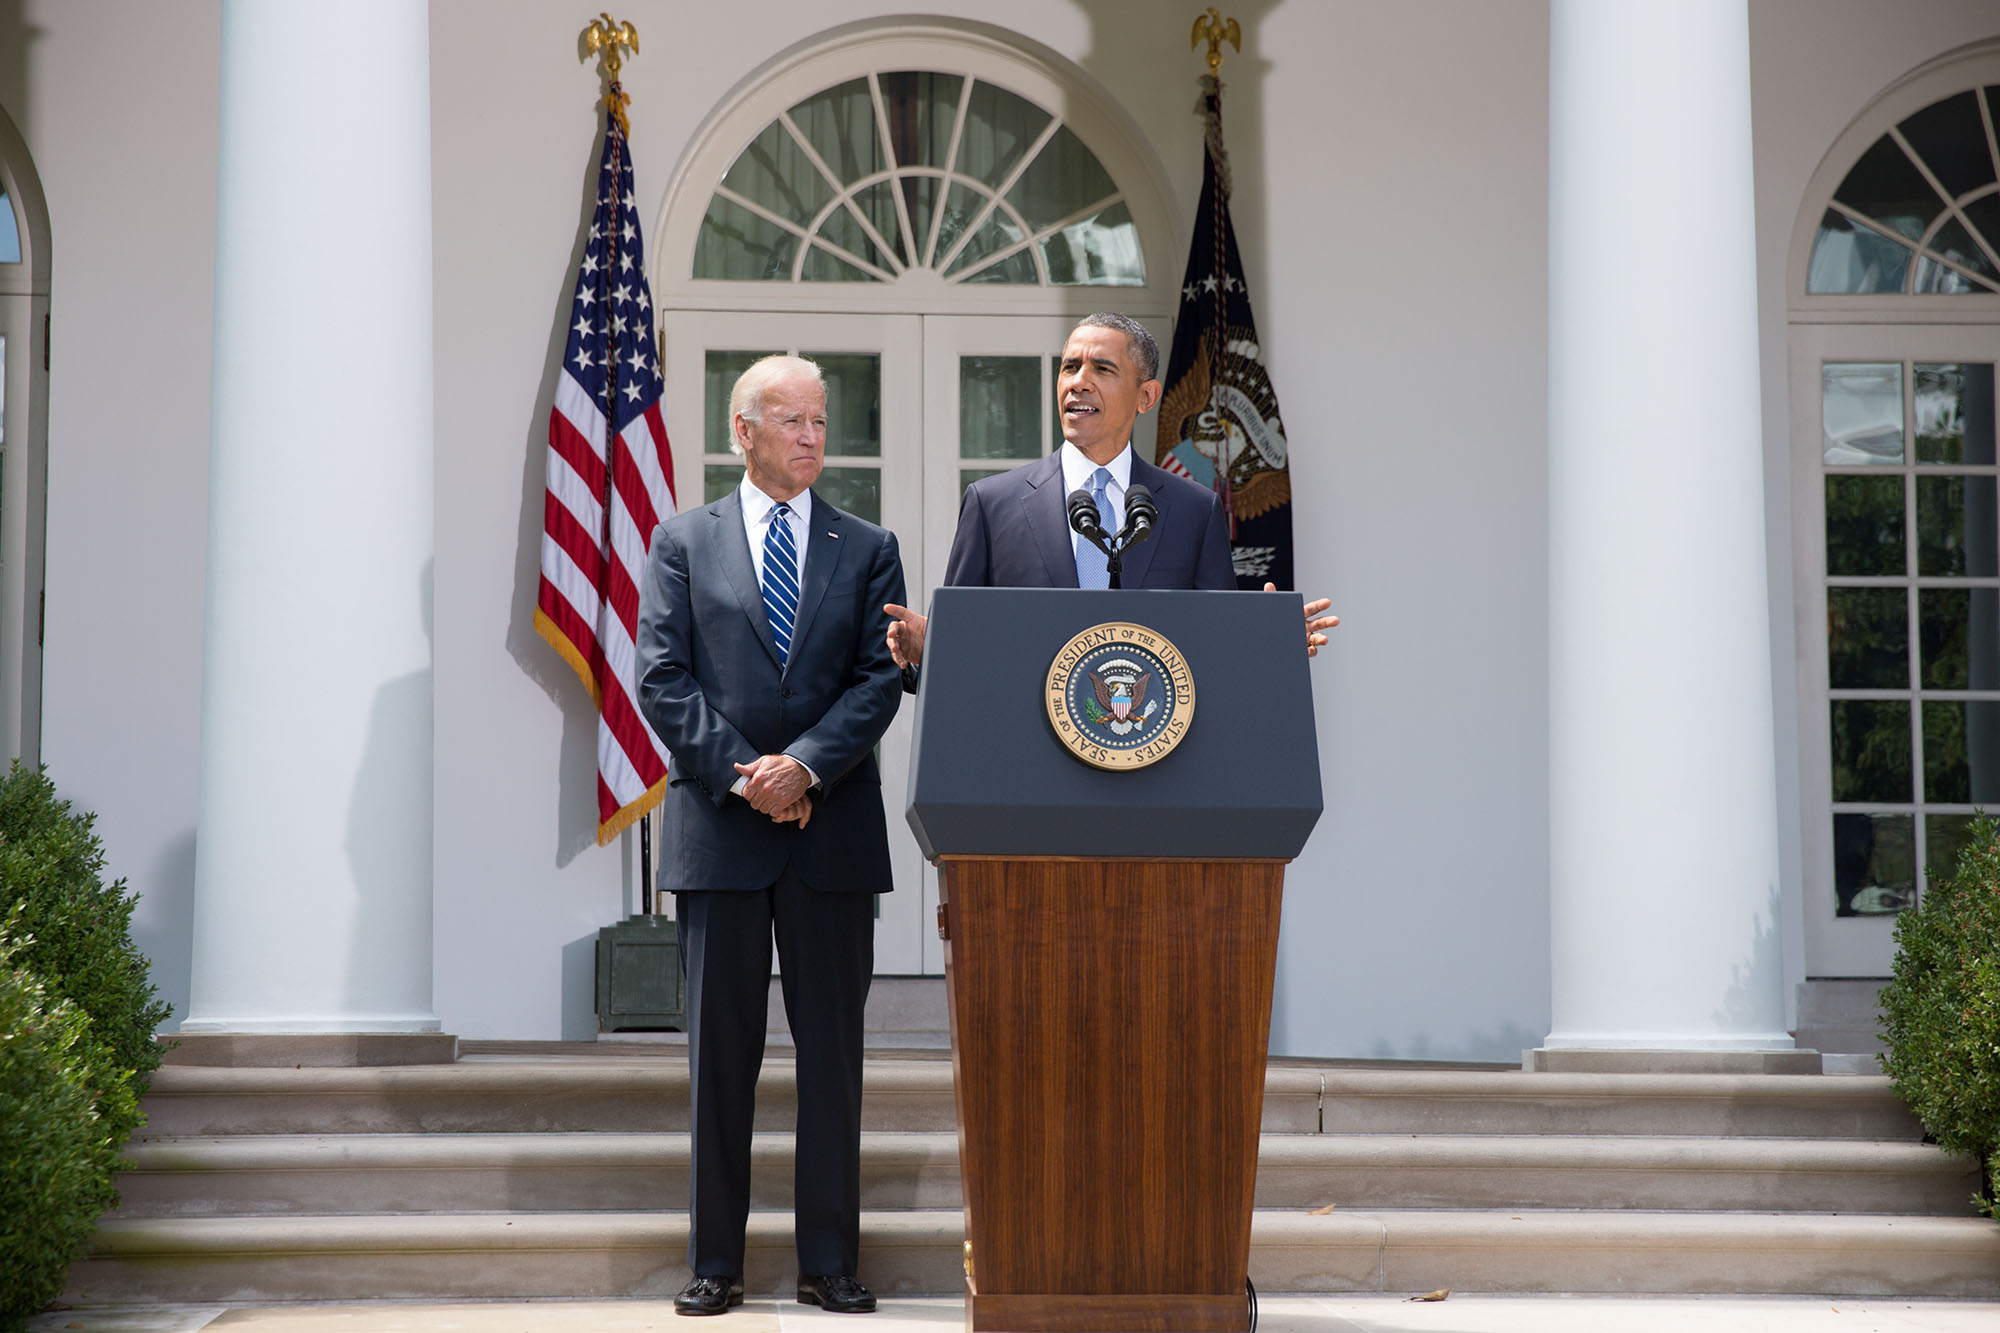 President Barack Obama makes a statement on the situation in Syria, with Vice President Joe Biden, in the Rose Garden